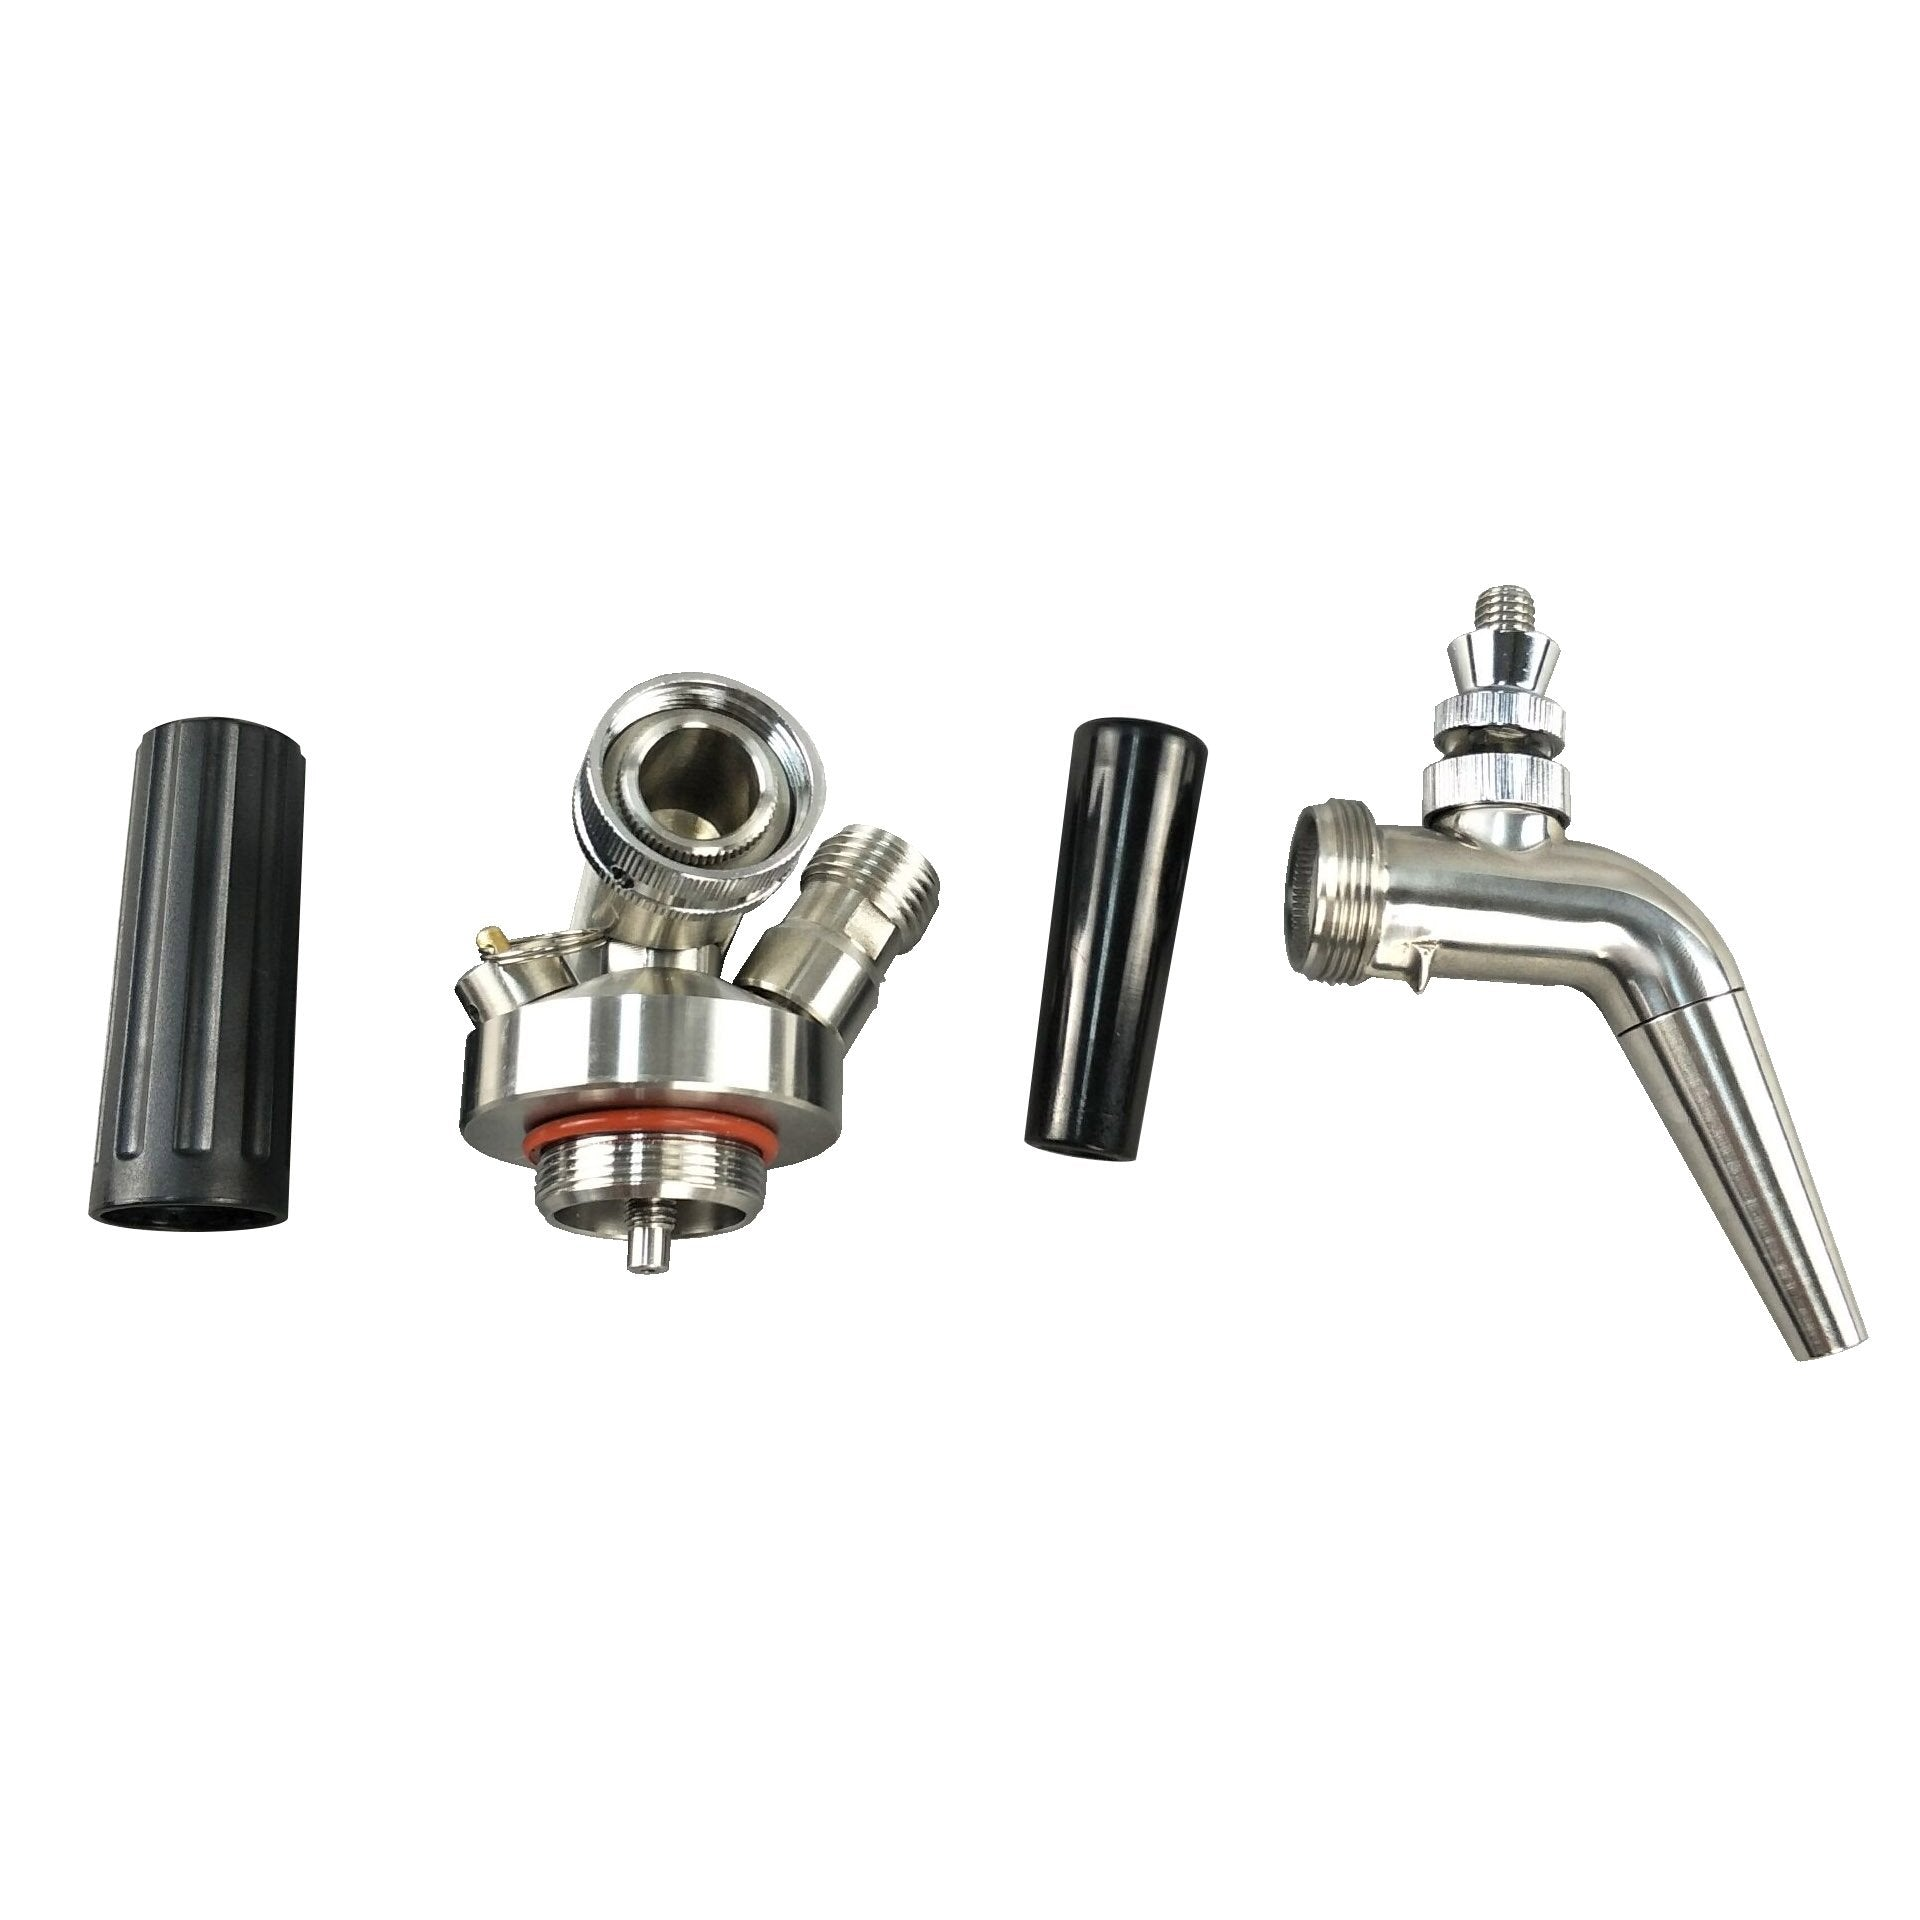 Nitrogen upgrade kit with stout faucet - Keg Smiths - Premium Draft Kegs & Accessories